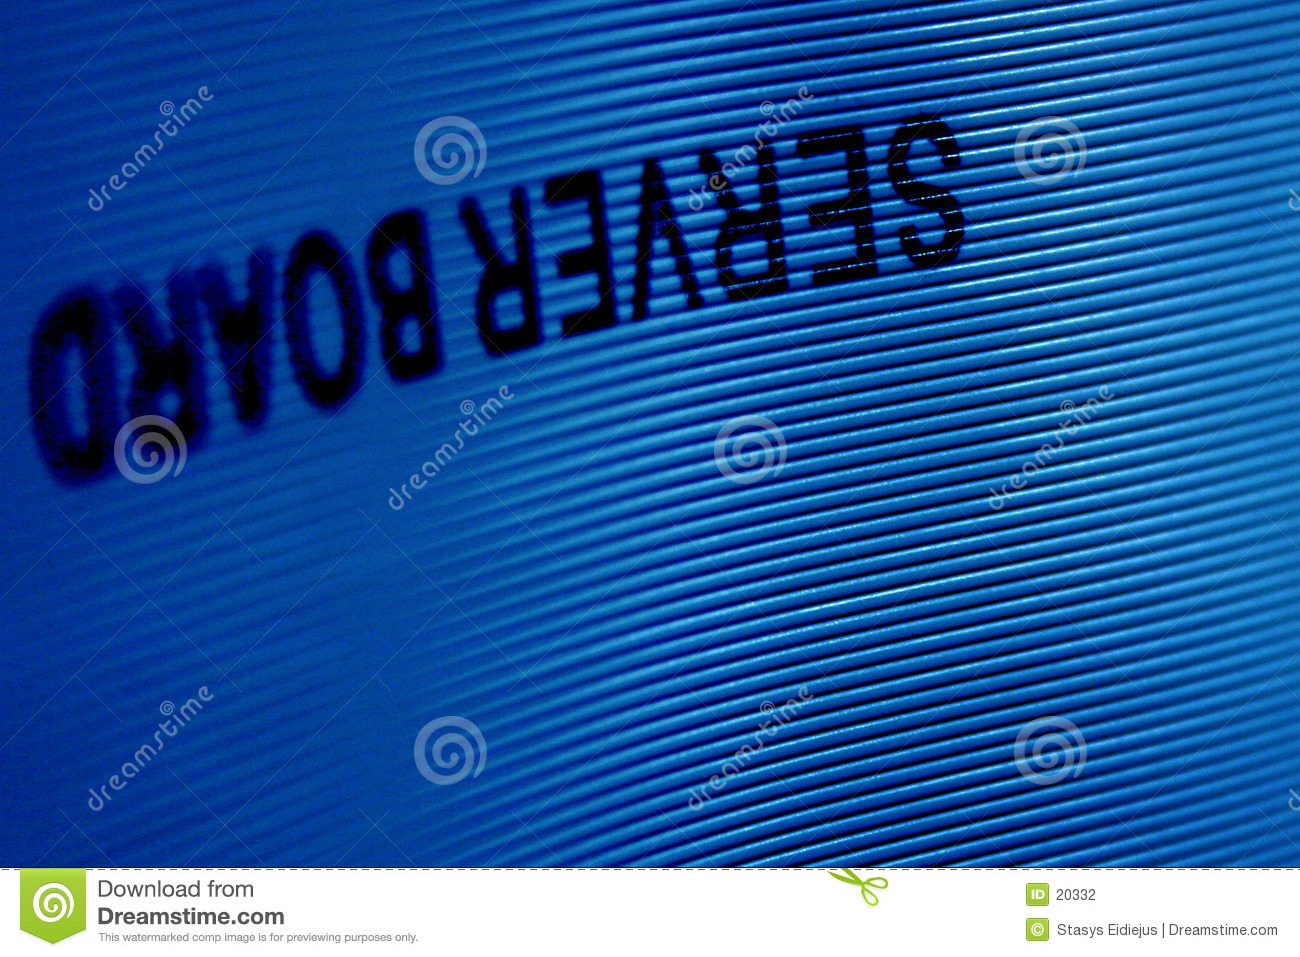 Computer wire texture with lettering